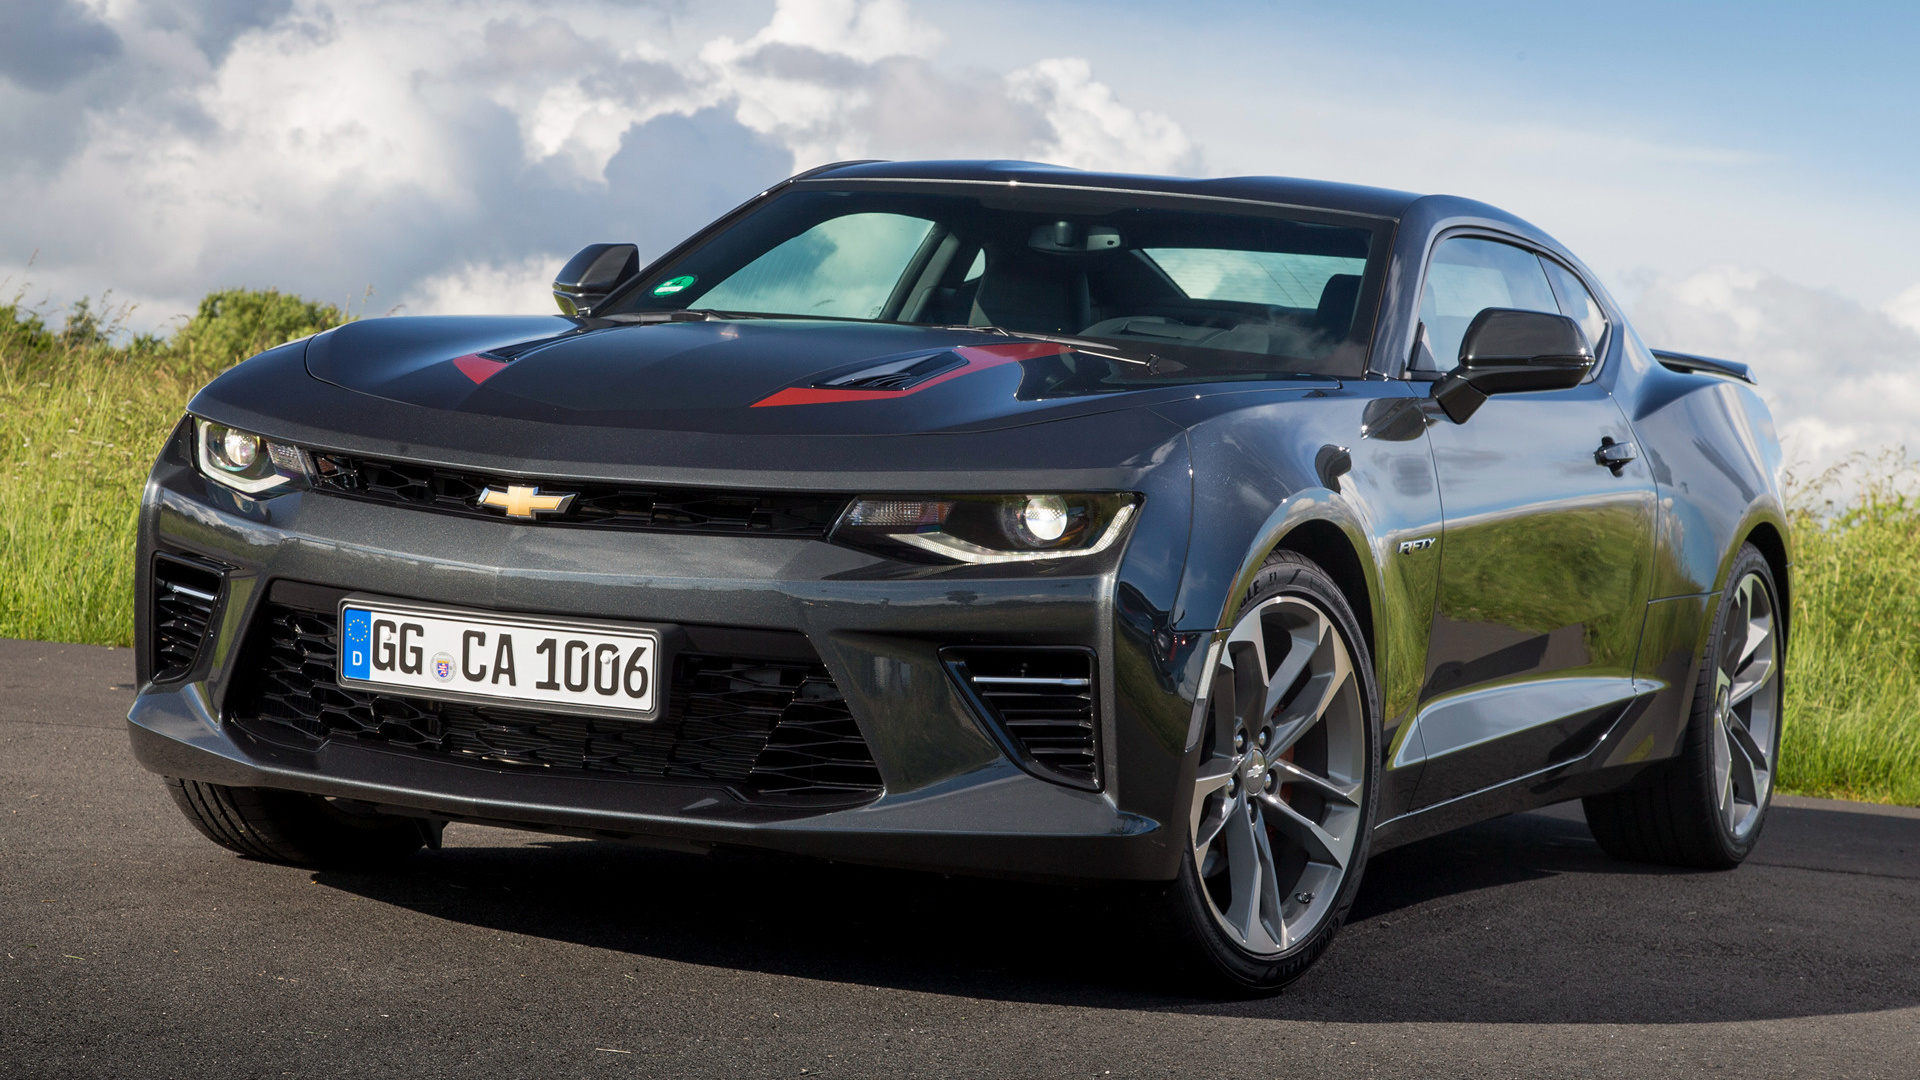 Chevrolet Camaro V8 50th Anniversary (2016) EU Wallpapers and HD ...